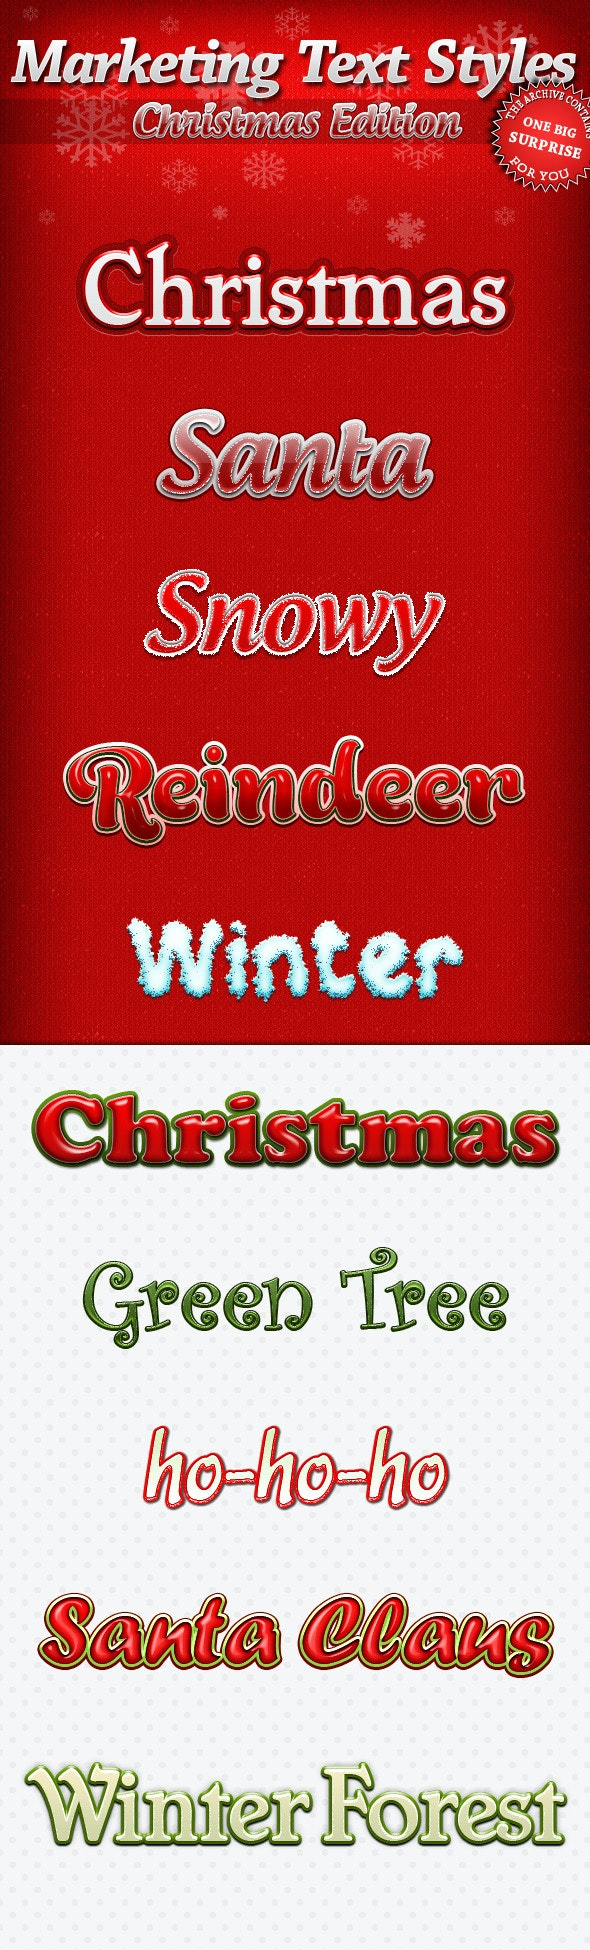 Marketing Text Styles - Christmas Edition - Text Effects Styles